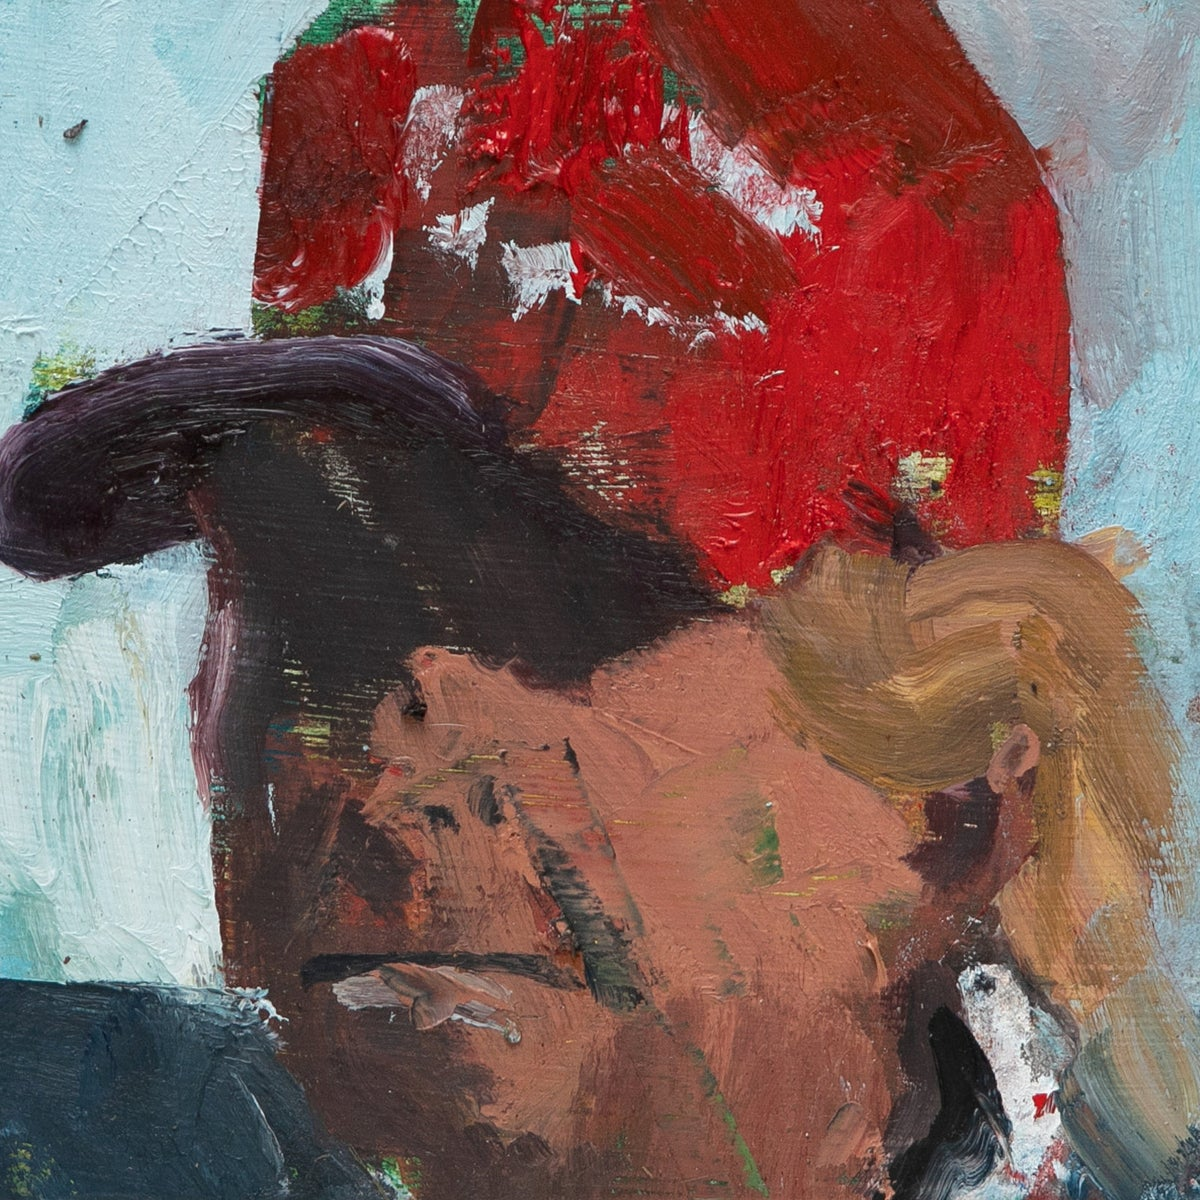 A portrait of President Donald Trump from Iddo Markus' painting series 'The Apprentice.'